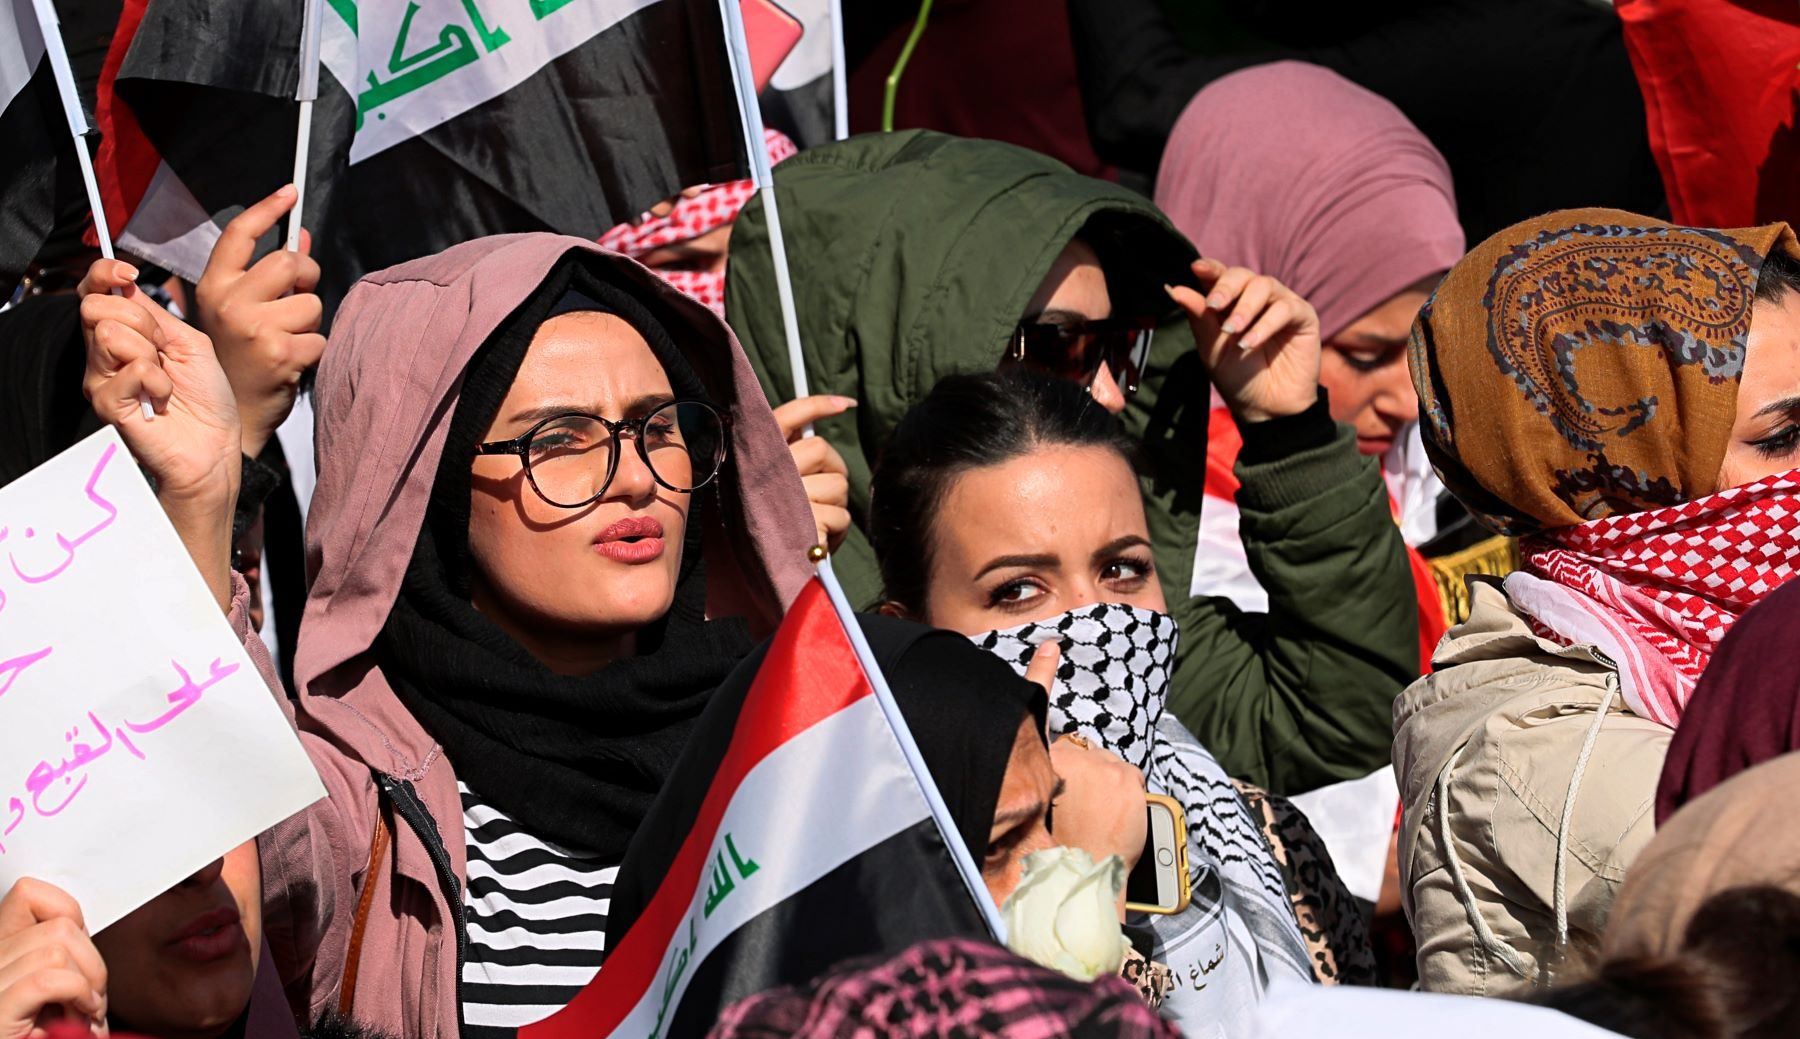 Women in Iraq protest against gender violence.